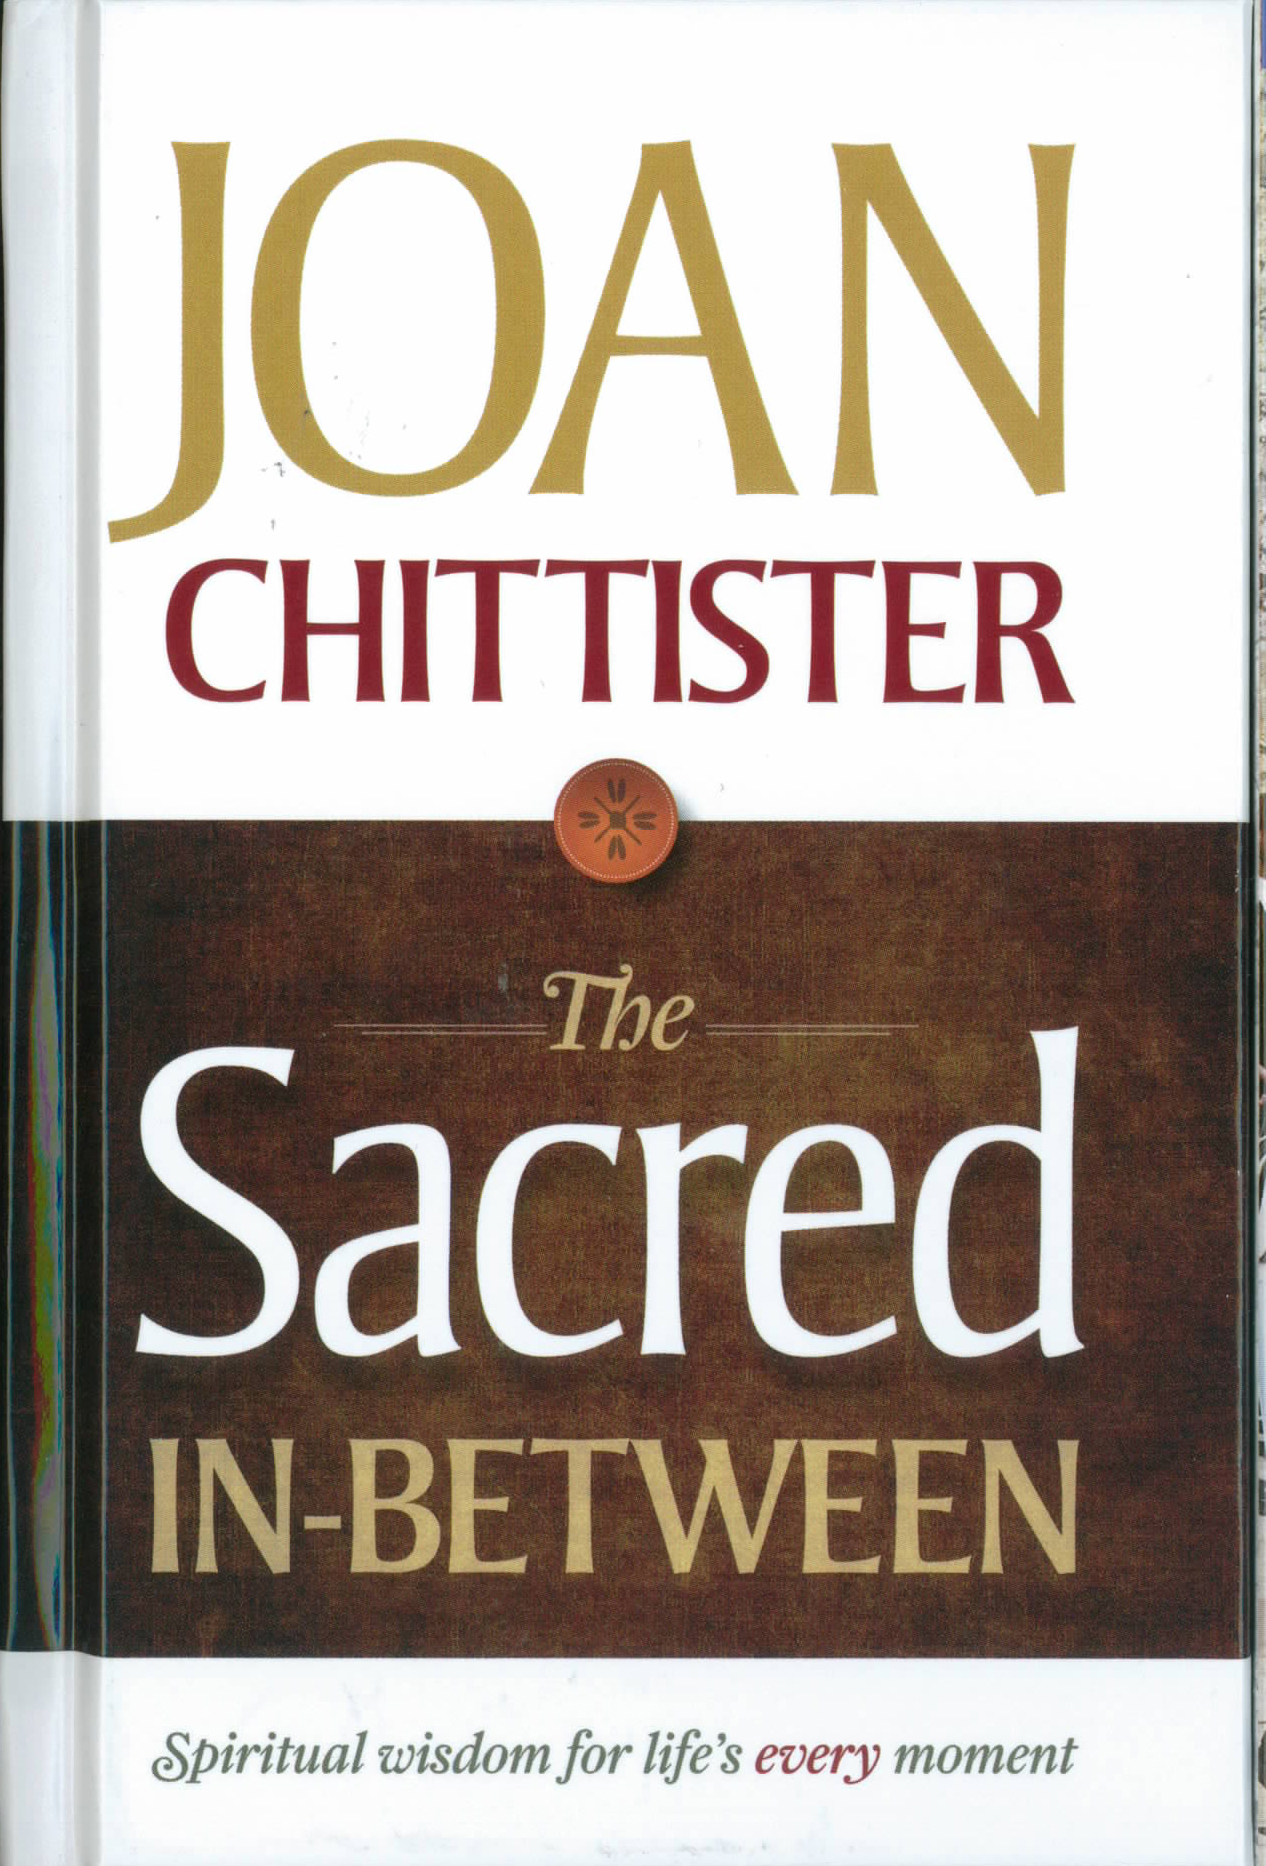 The Sacred In-Between: Spiritual Wisdom for Life's Every Moment by Joan Chittister 108-9781627850018